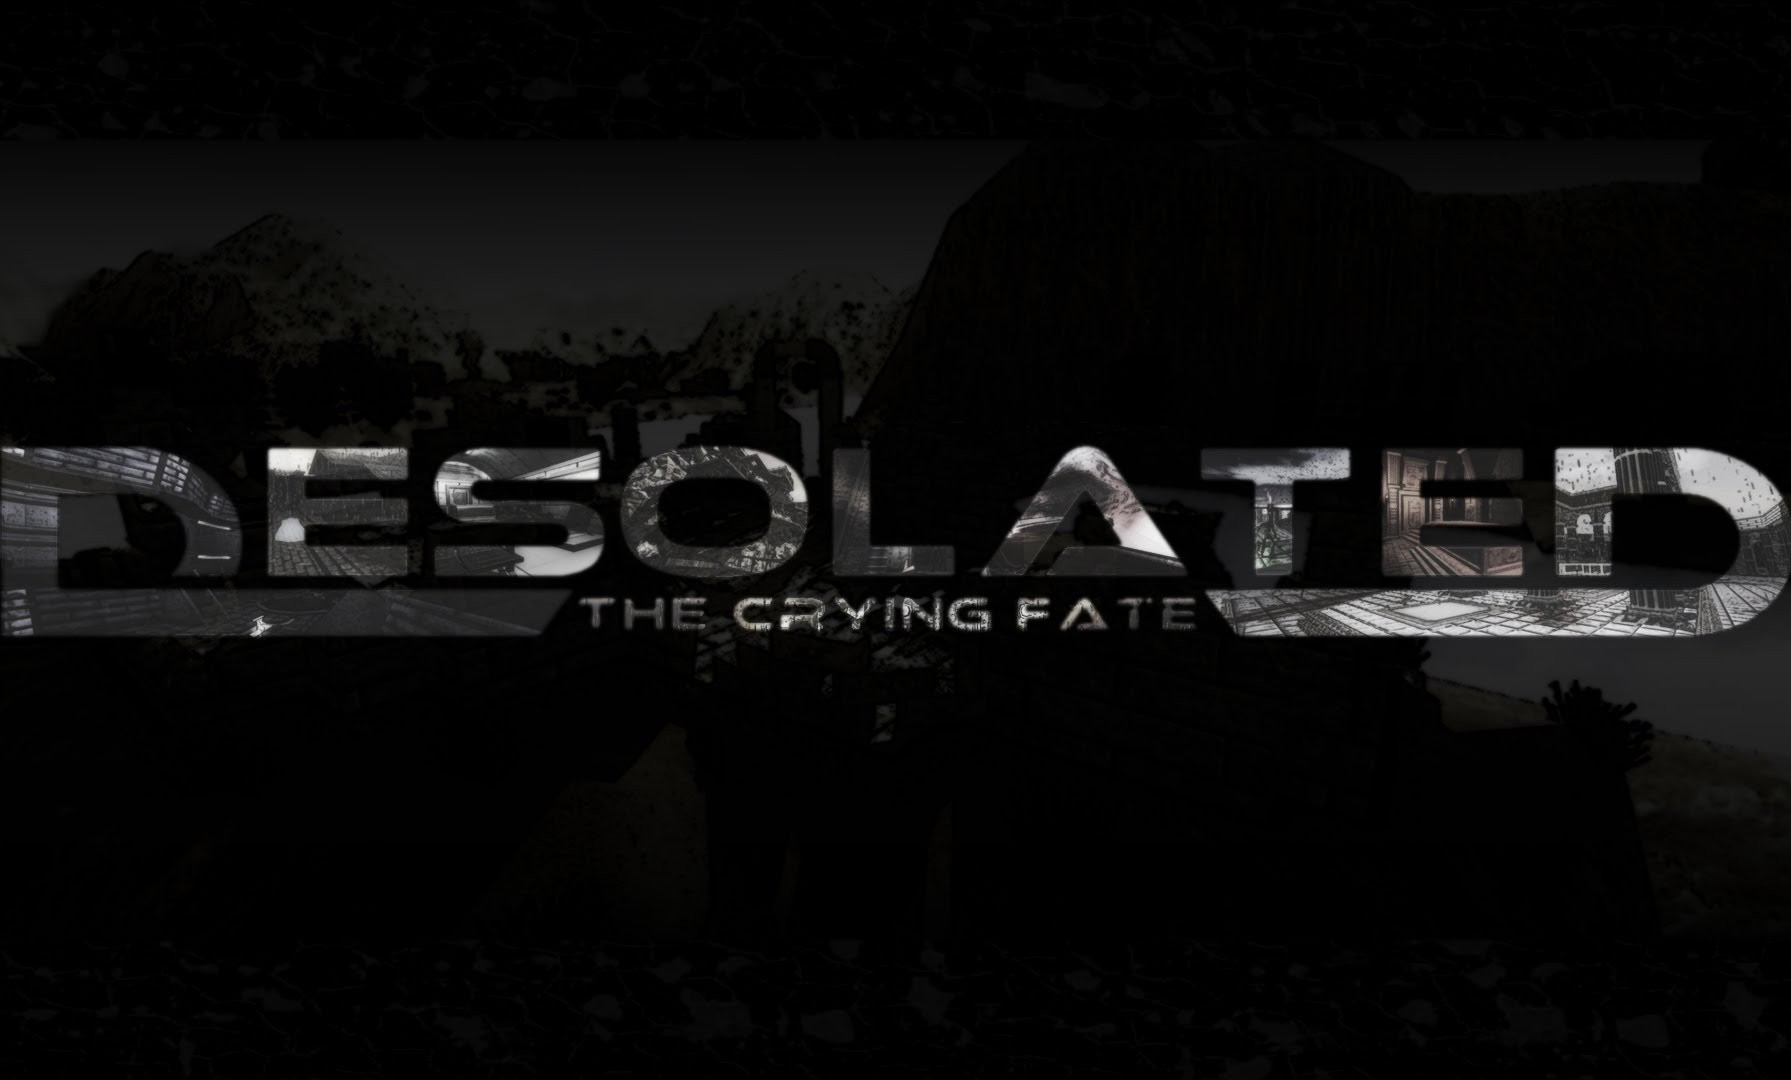 DESOLATED THE CRYING FATE